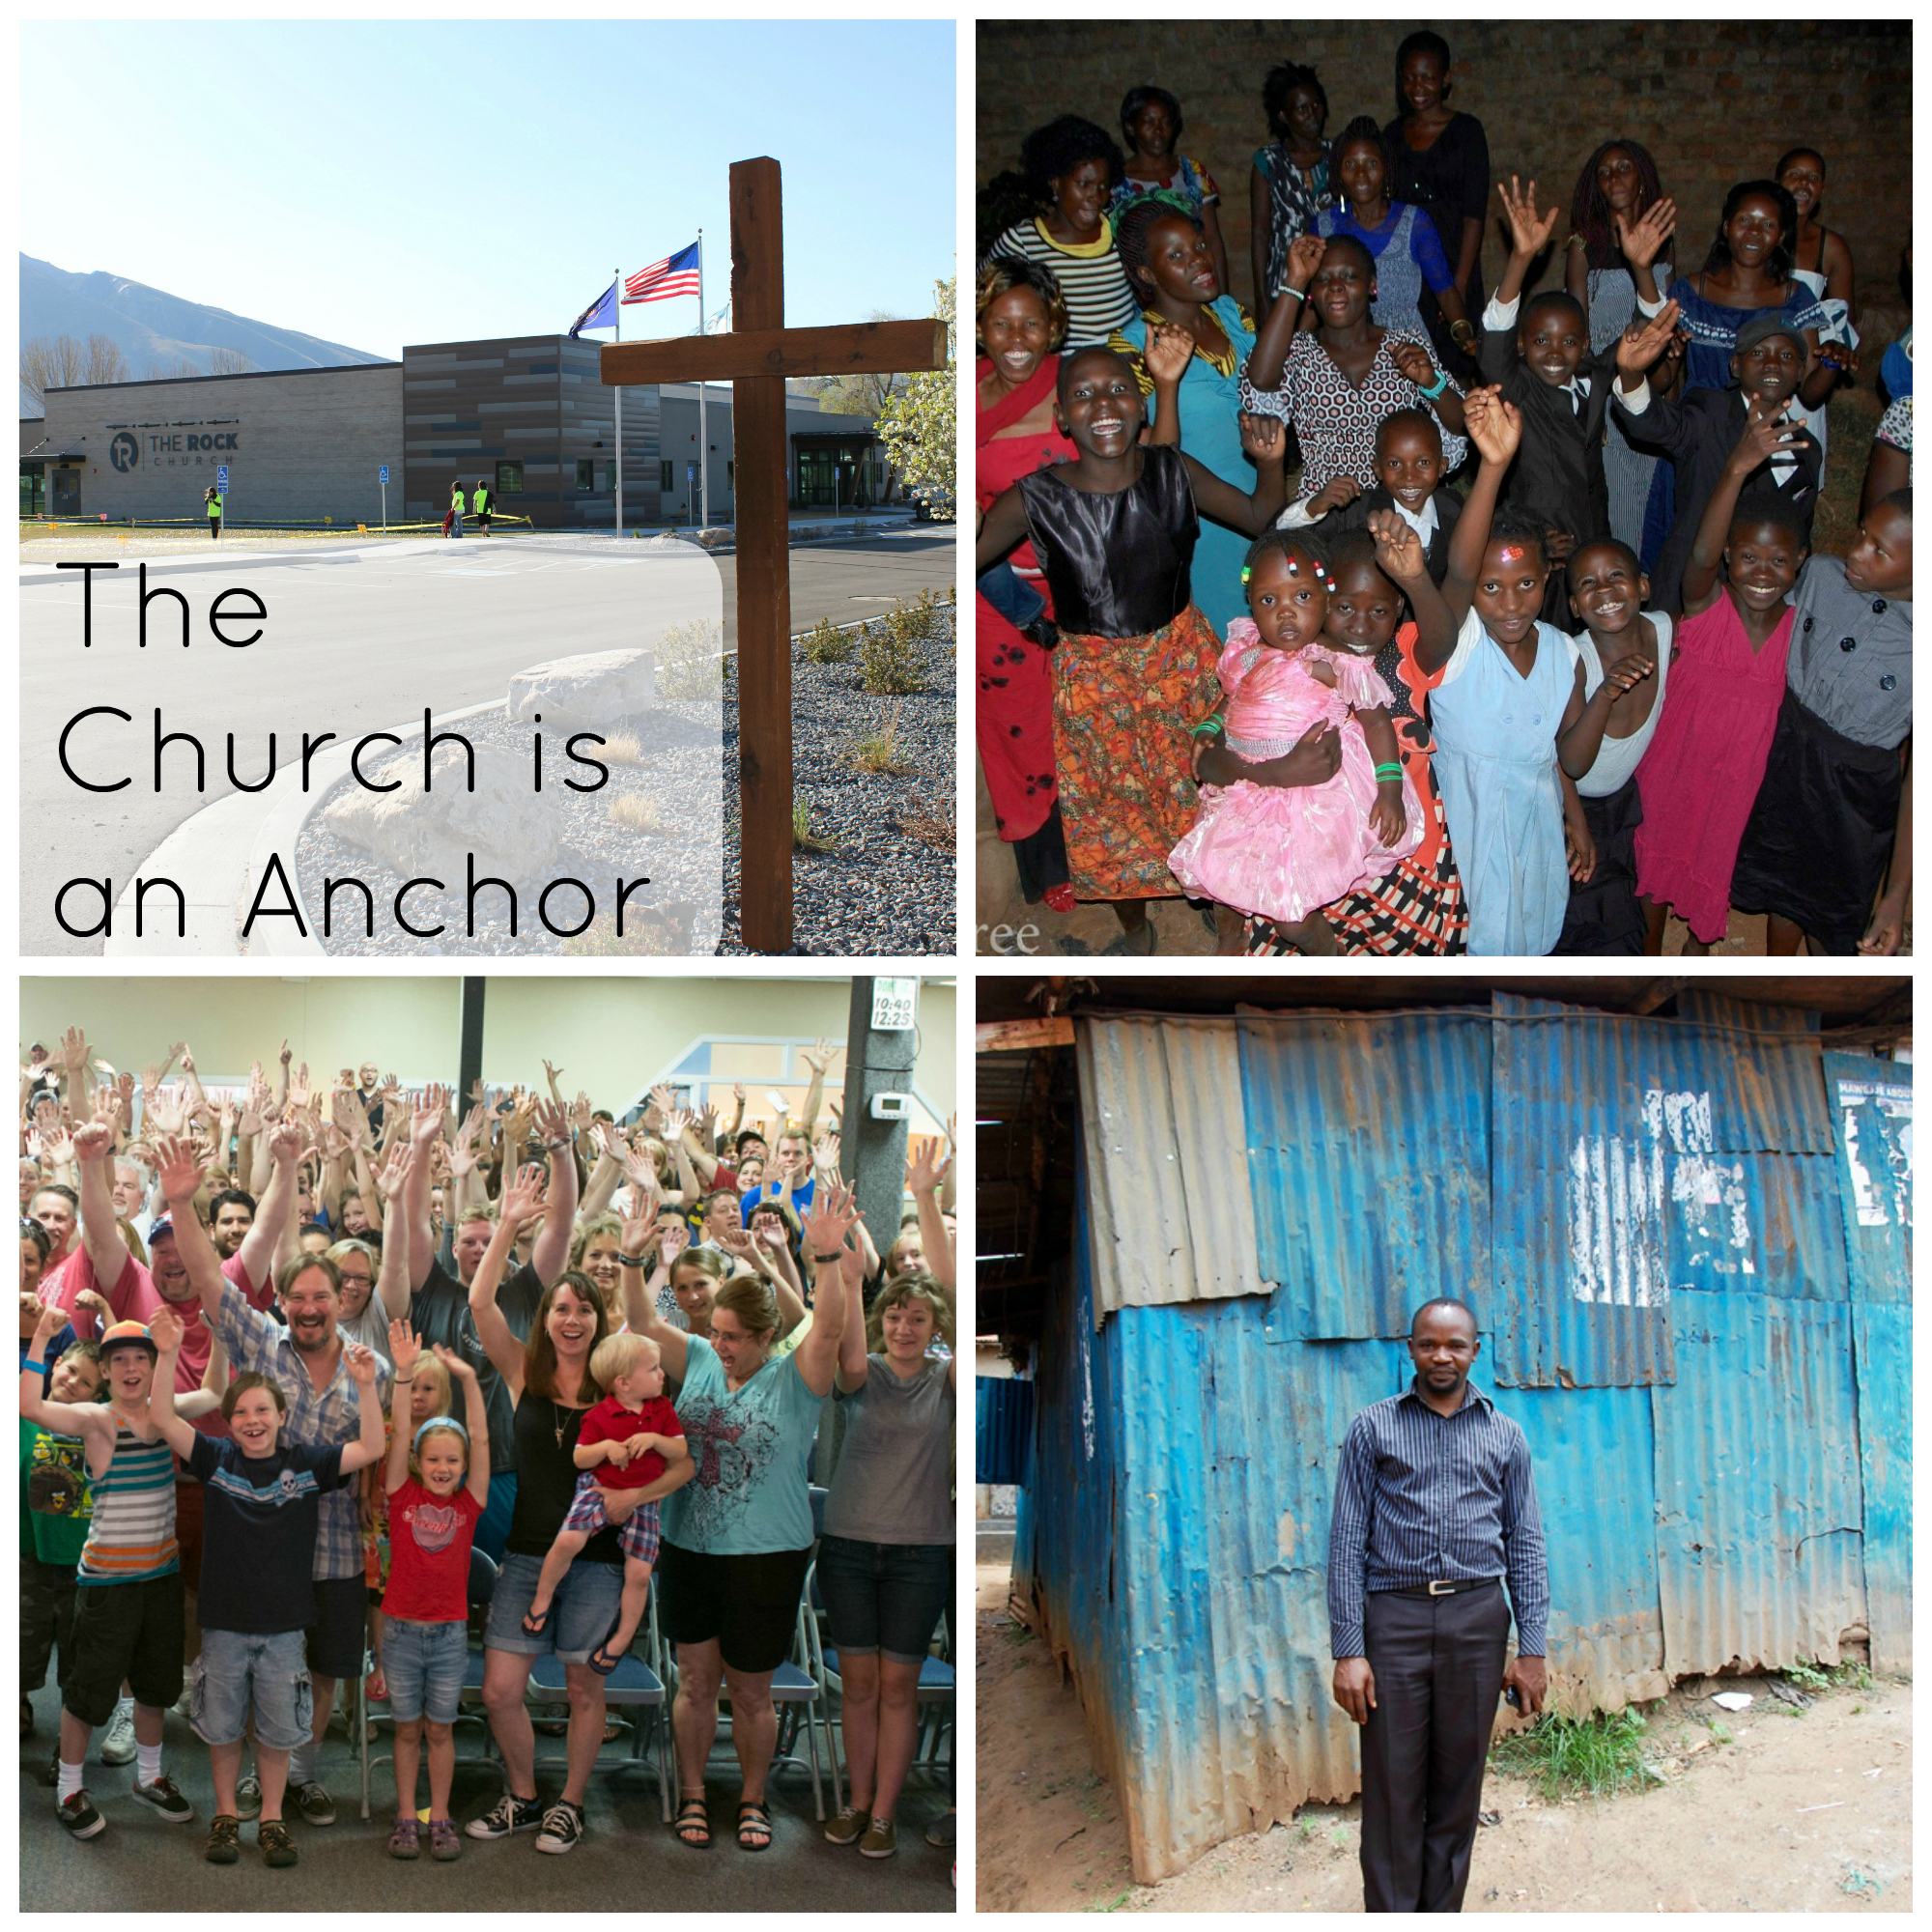 The Church is an Anchor